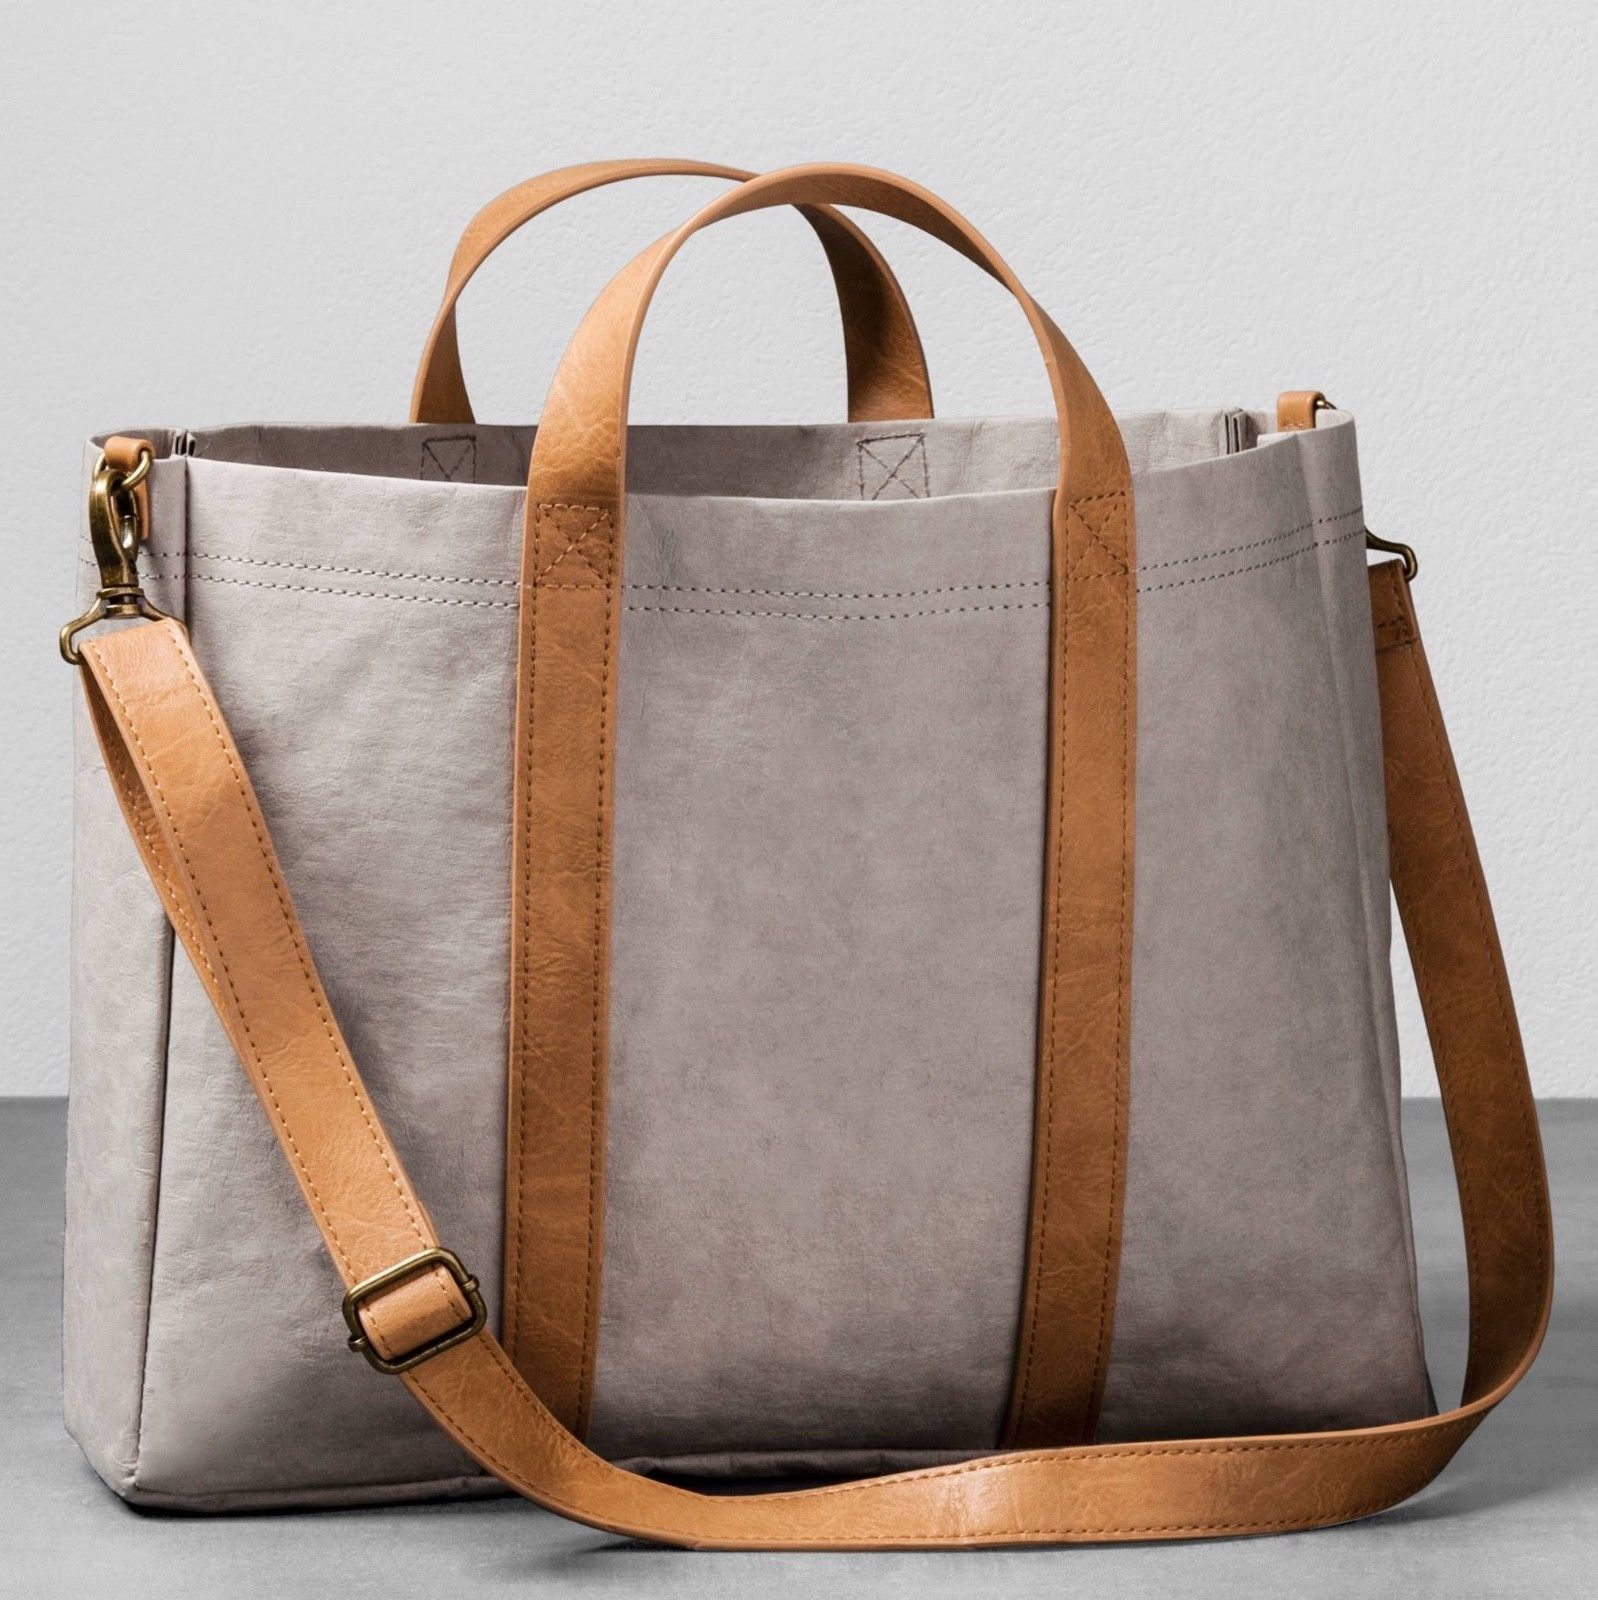 9d51f522605f Hearth   Hand with Magnolia Joanna Gaines Gray Paper Canvas Tote Bag Purse  NWT